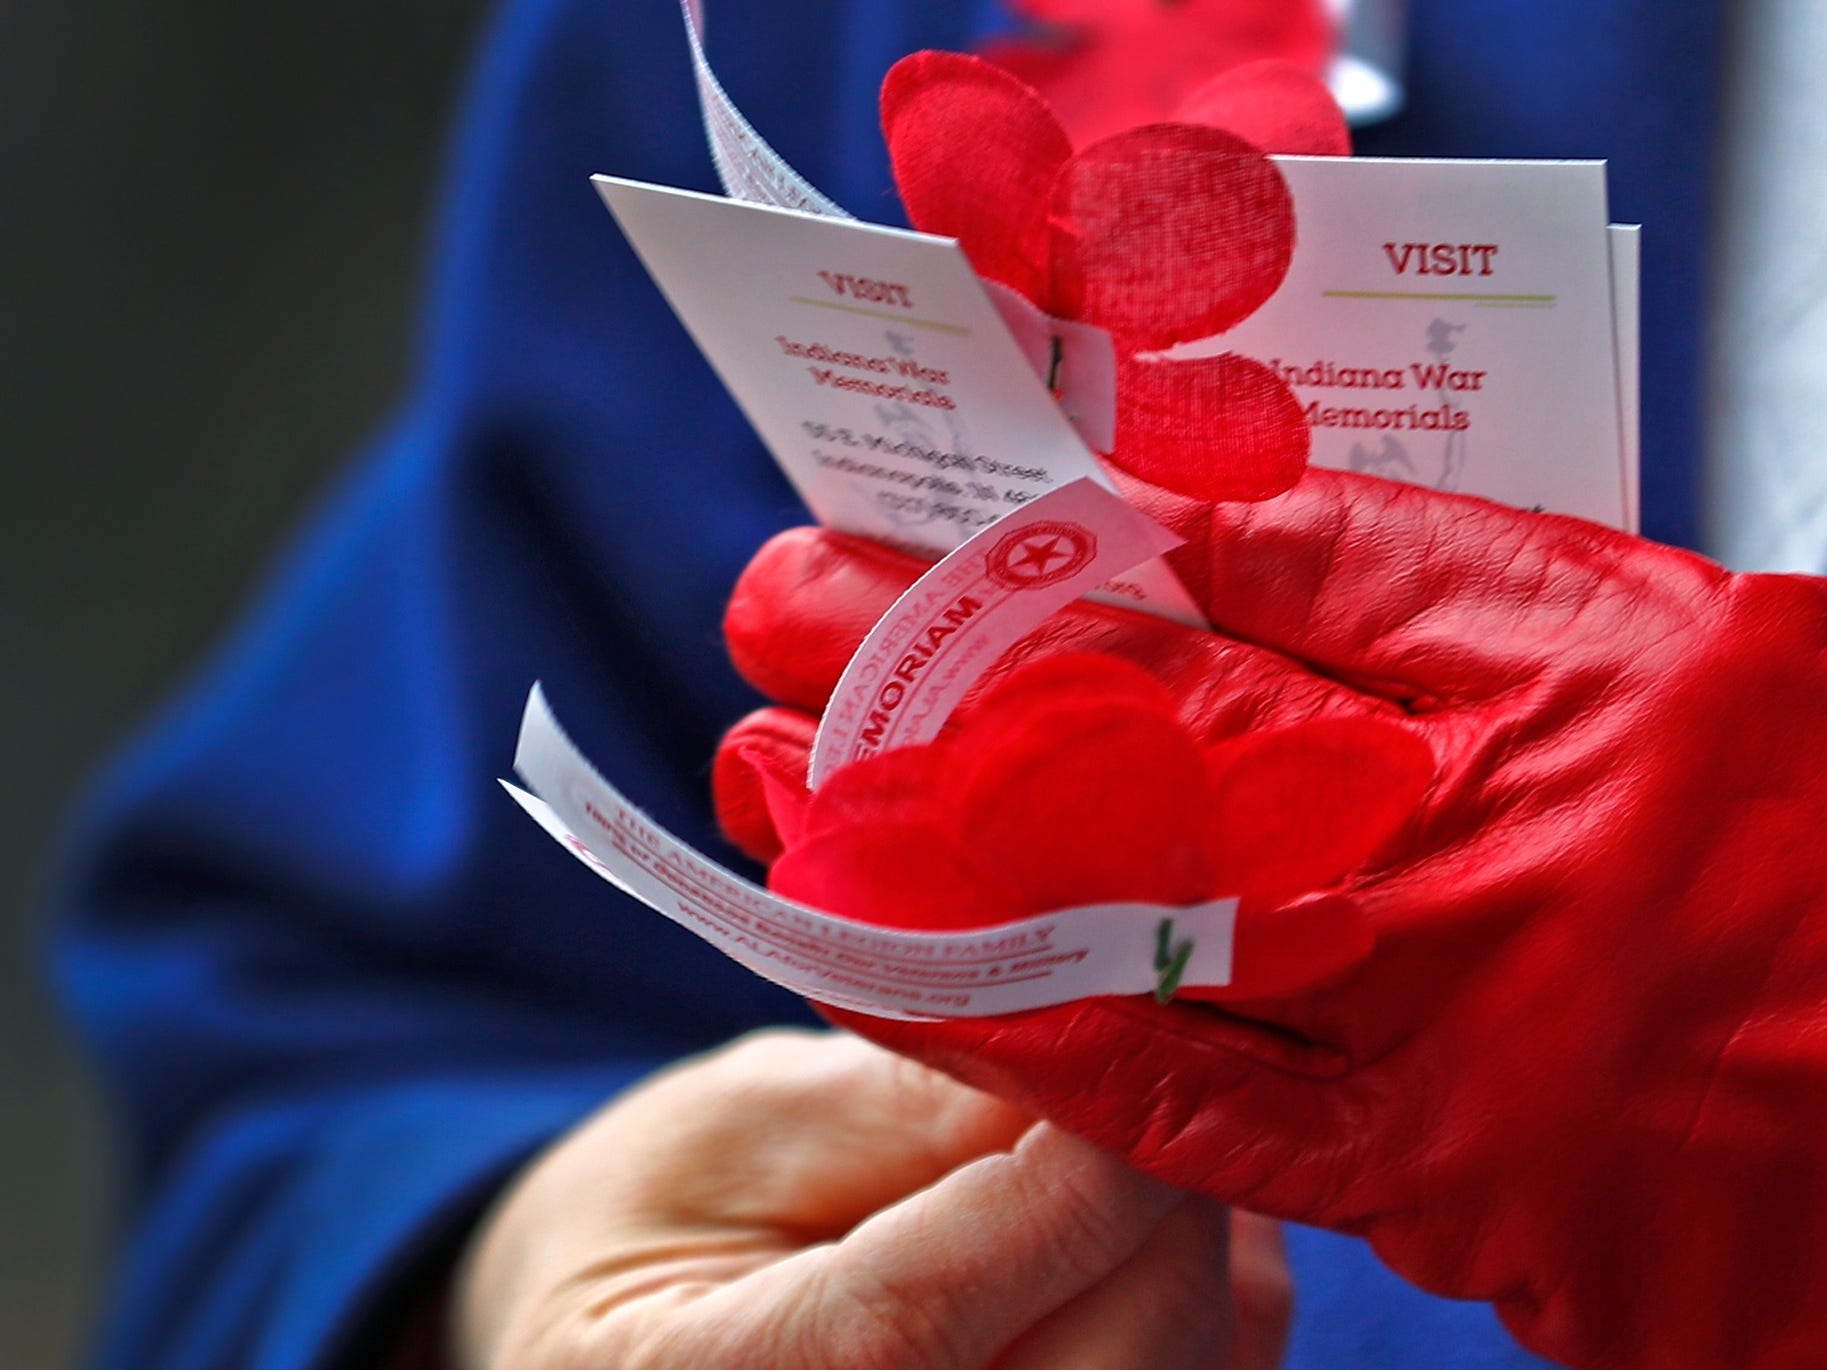 Marie Beason, Executive Director of the Indiana War Memorials Foundation, gives away free Remembrance Poppies from the Indiana War Memorials Foundation (IWMF) and Emmis Communications, on Monument Circle, Friday, Nov. 9, 2018.  The flower give-away is in celebration of Veterans Day and the 100th anniversary of the end of World War I.